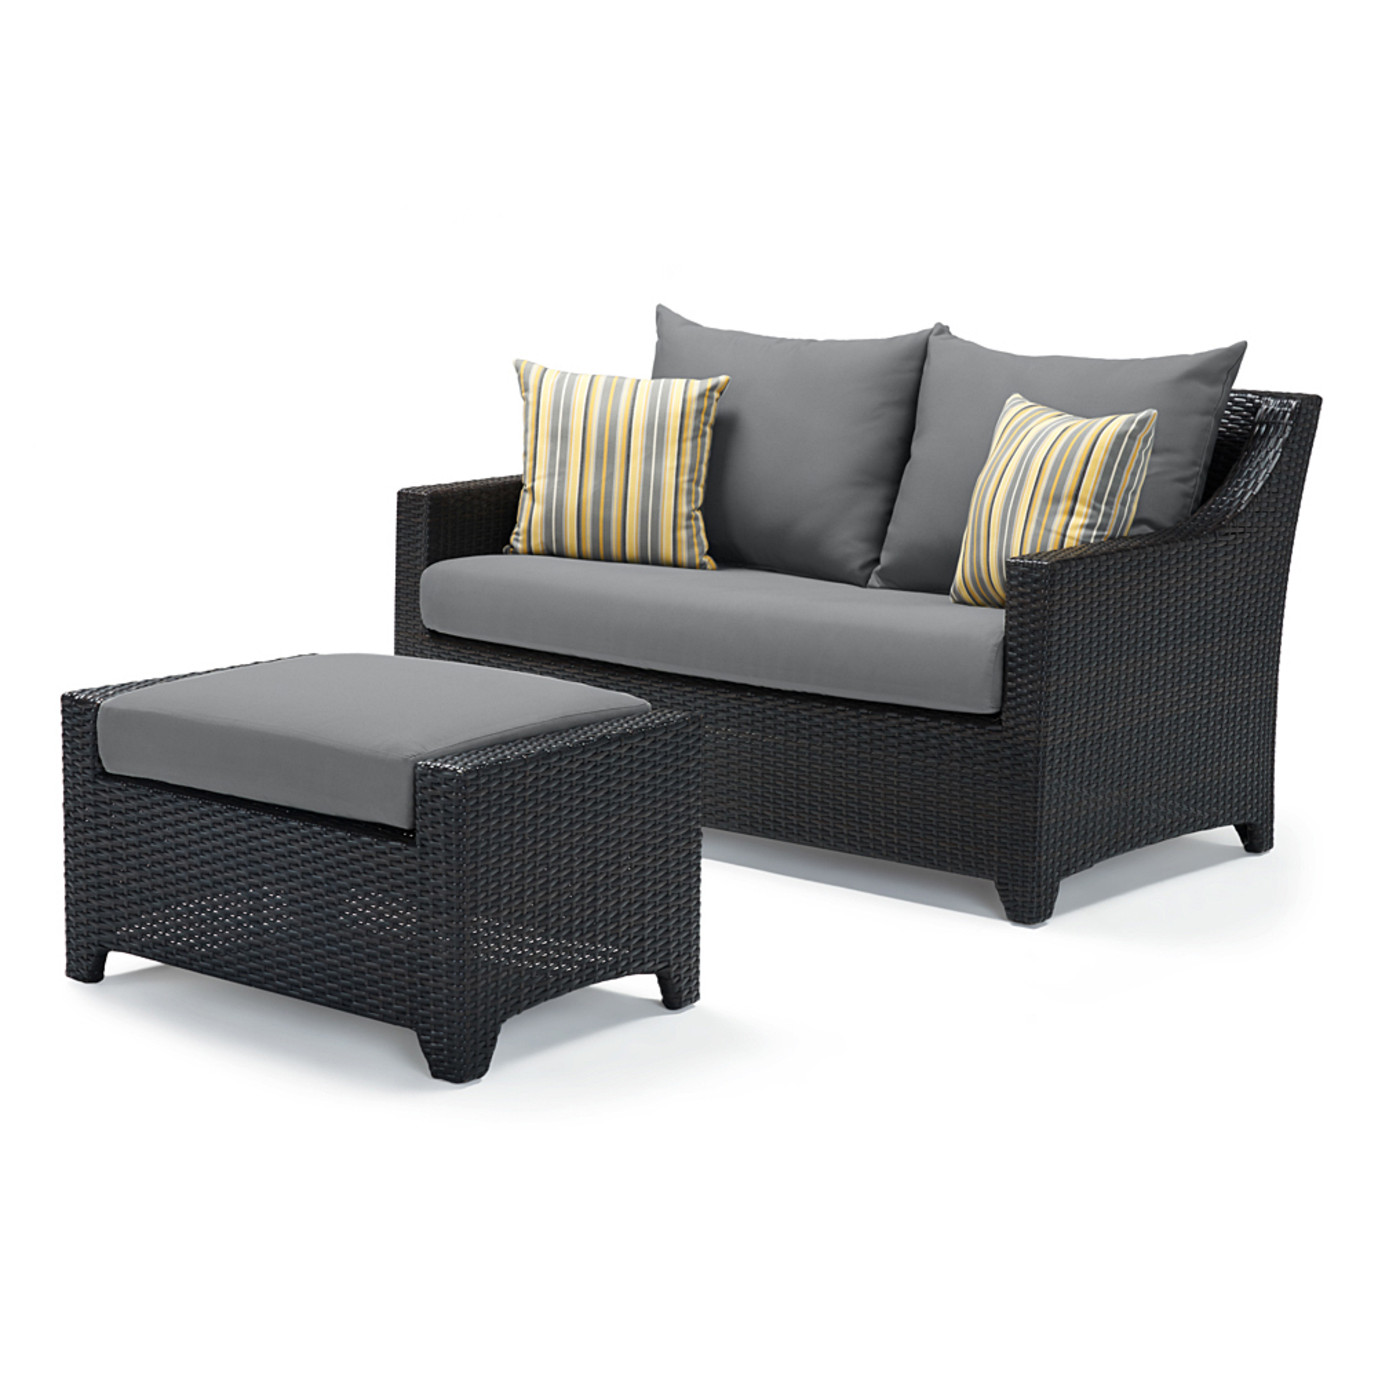 Deco™ Loveseat and Ottoman - Charcoal Gray